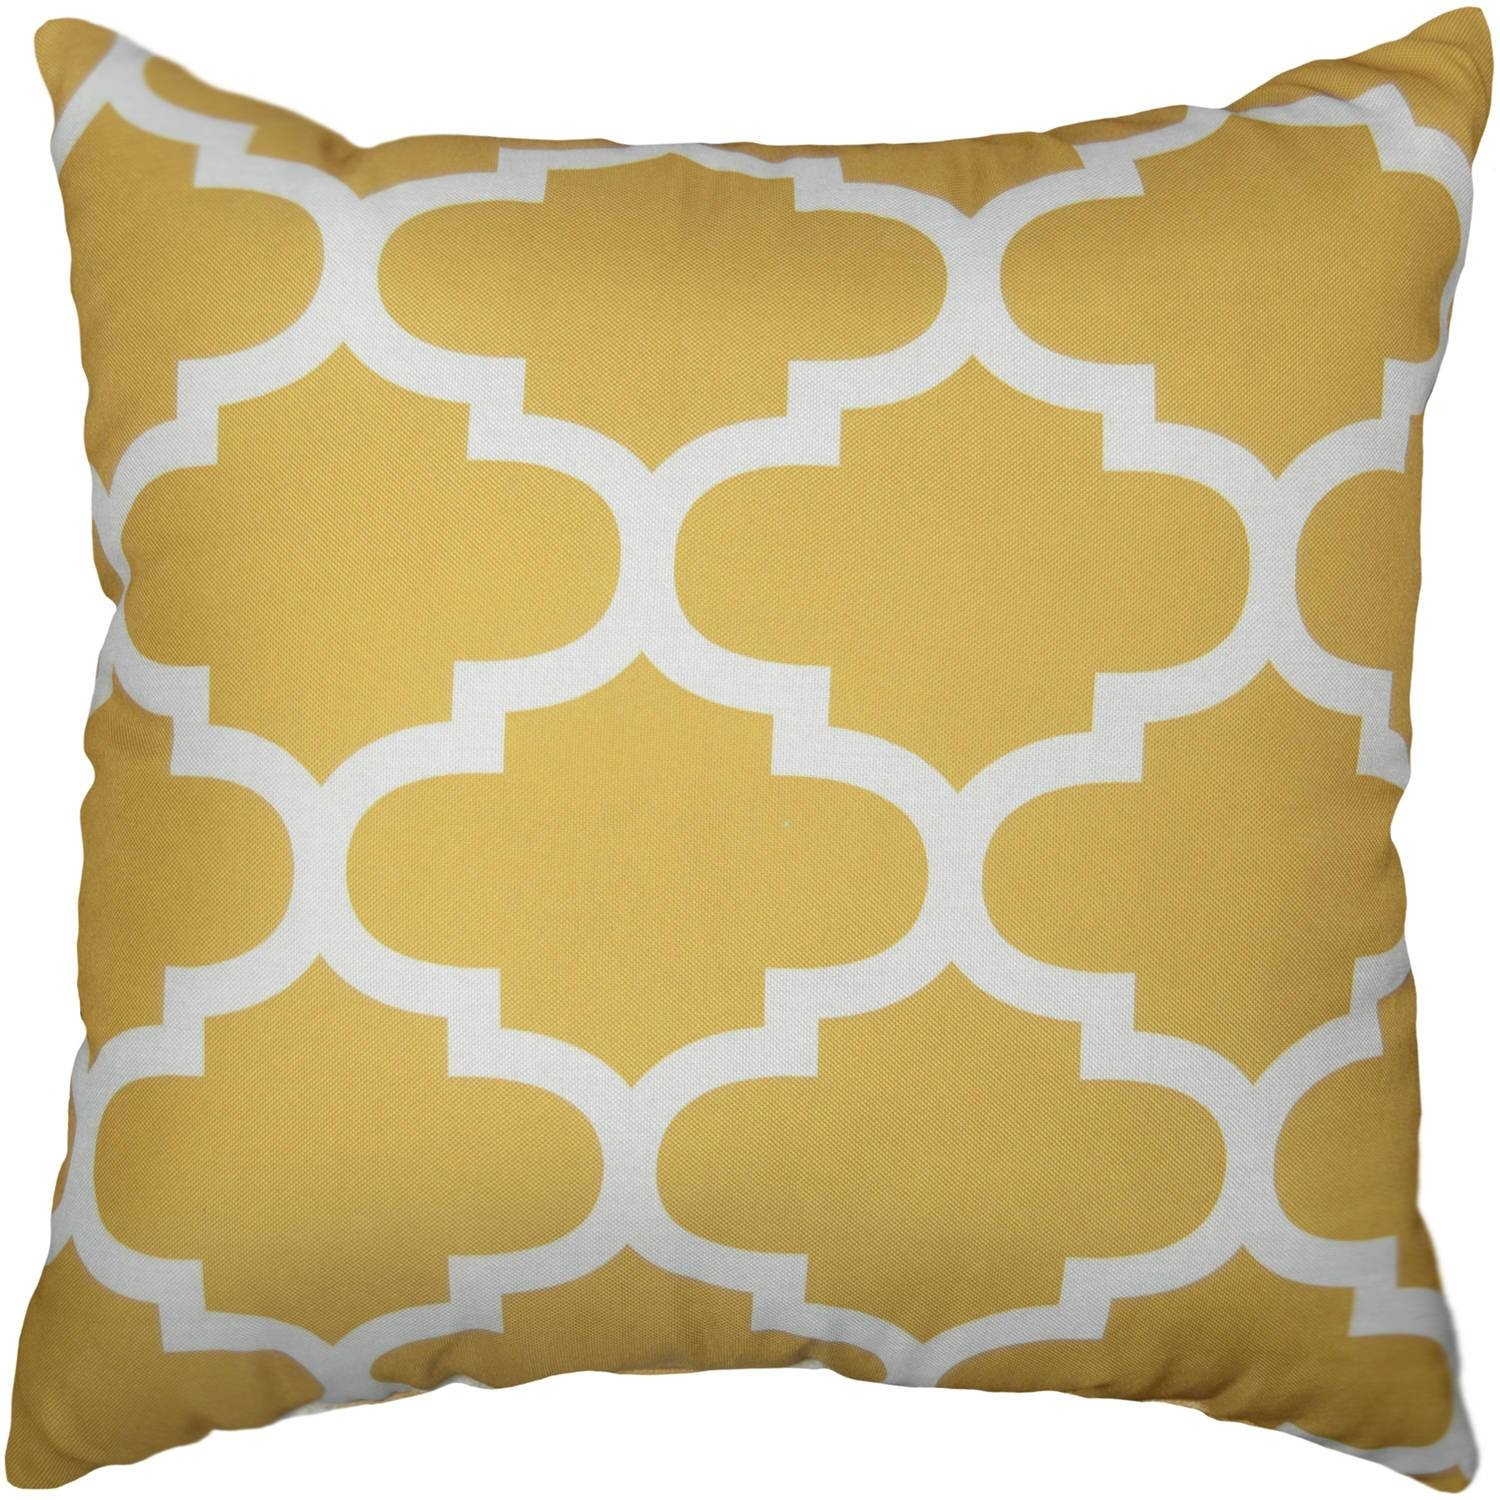 Mainstays Fretwork Decorative Pillow - Walmart for Gold Sofa Pillows (Image 9 of 15)